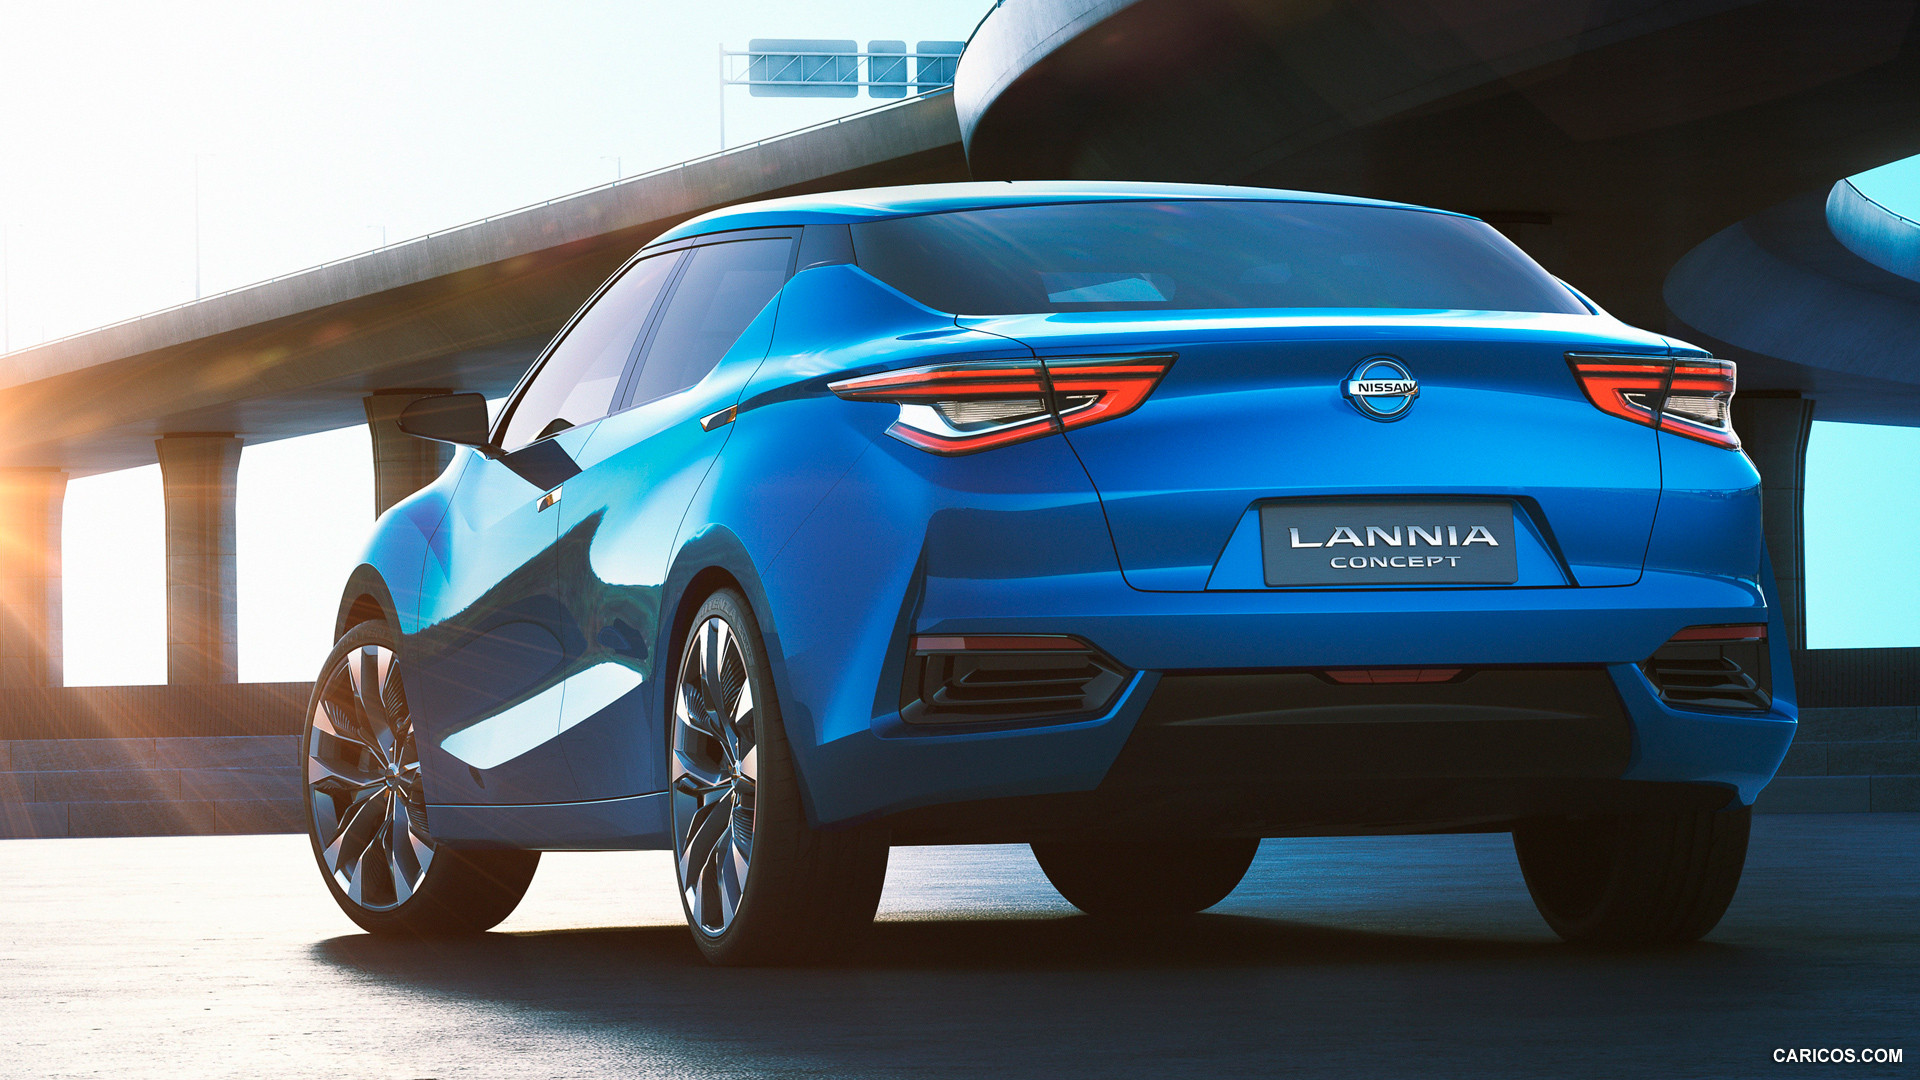 Nice wallpapers 2014 Nissan Lannia Concept 1920x1080px